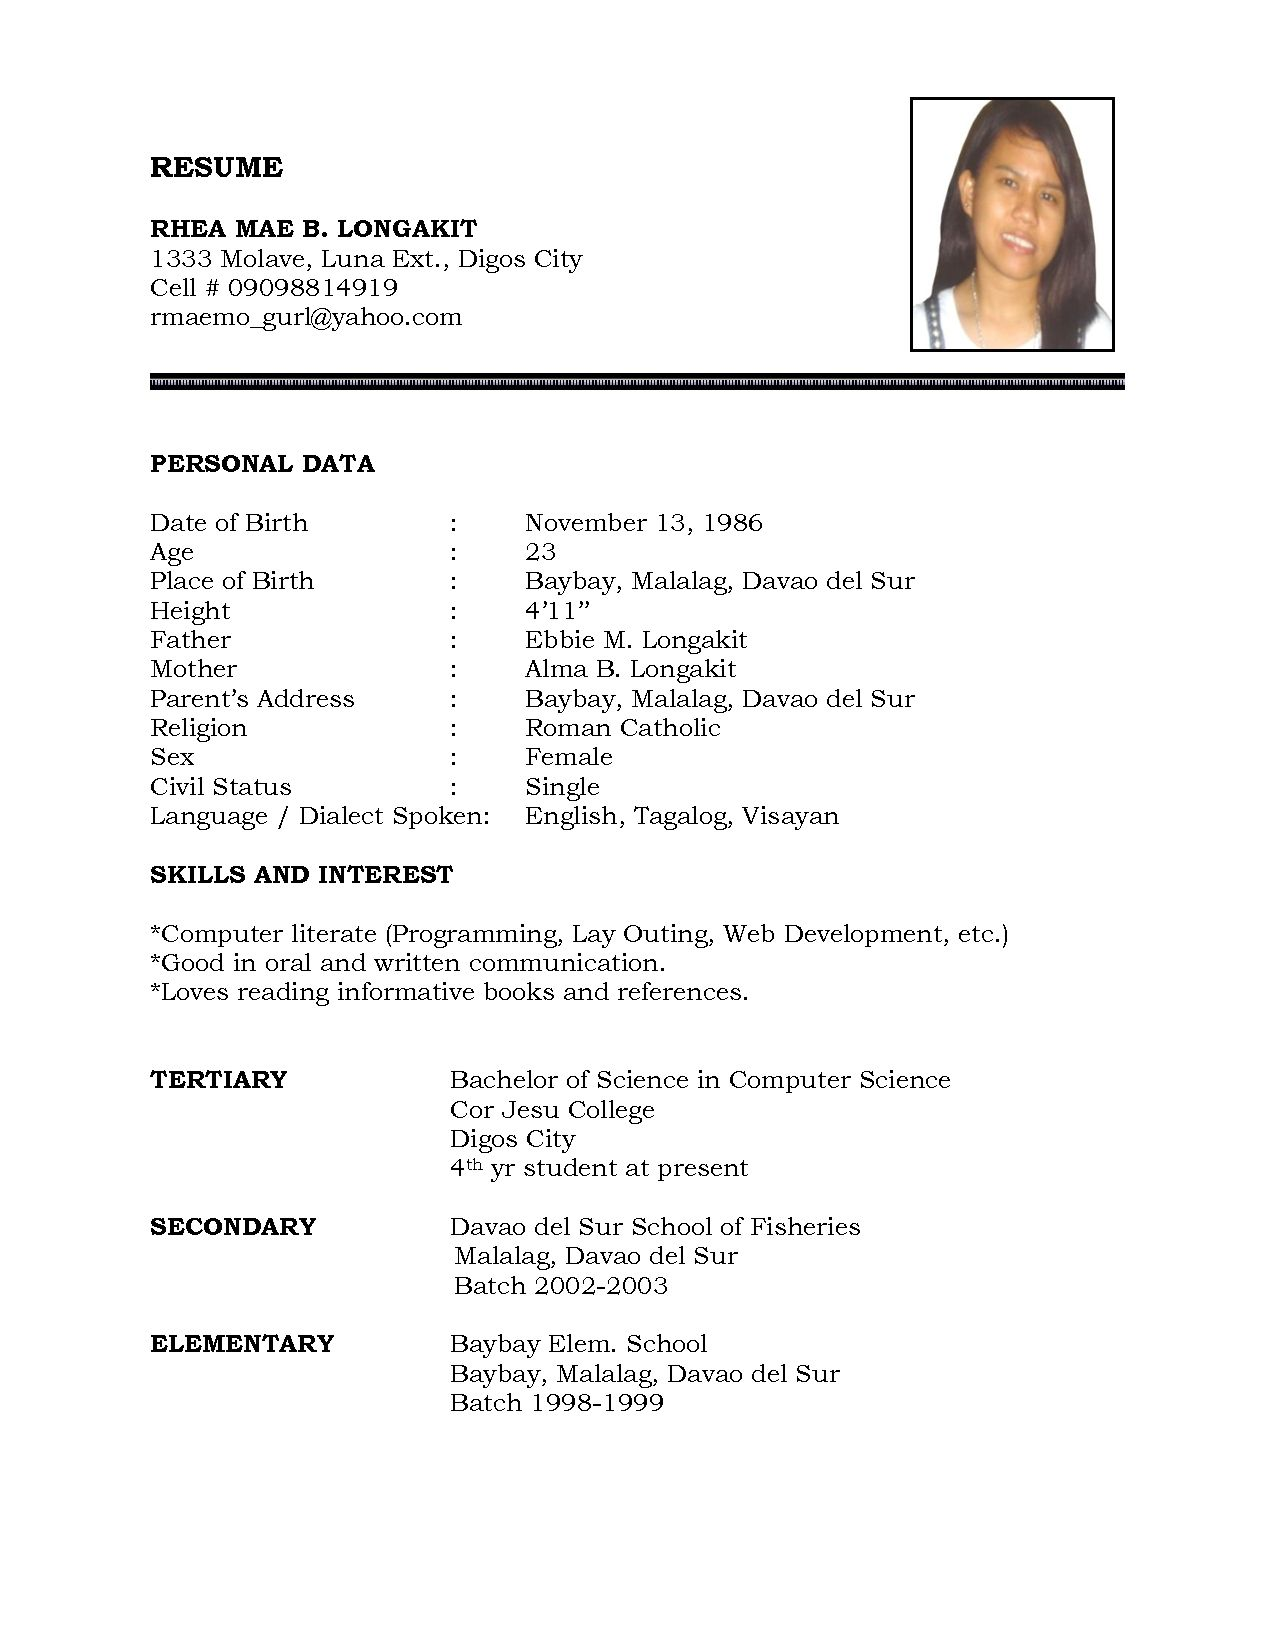 Easy Resume Examples Resume Sample Simple De9E2A60F The Simple Format Of Resume For Job